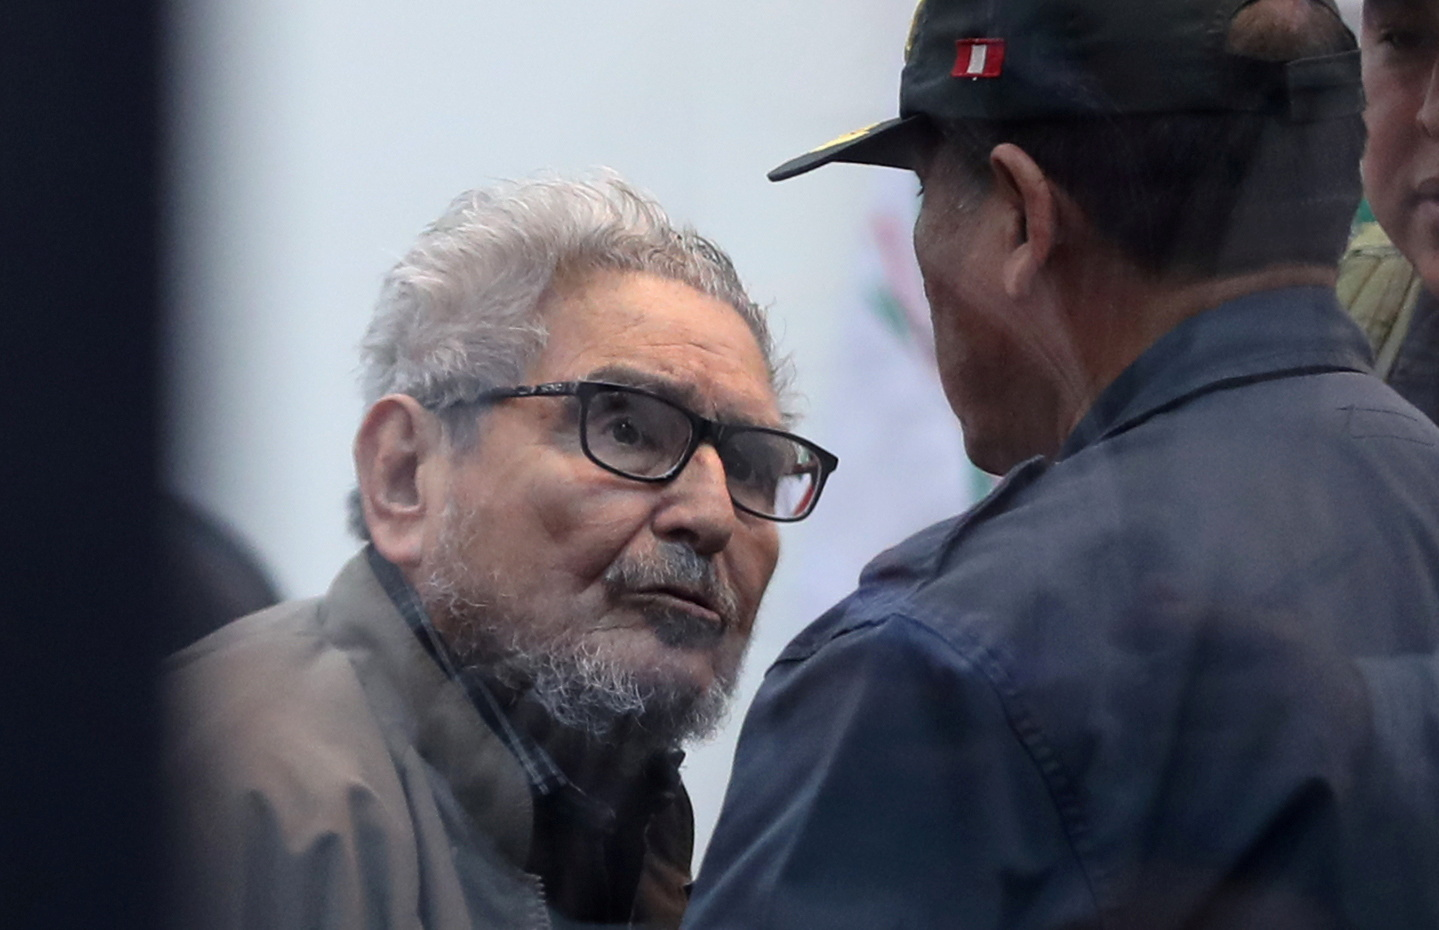 Shining Path founder Abimael Guzman attends a trial during sentence of a 1992 Shining Path car bomb case in Miraflores, at a high security naval prison in Callao, Peru September 11, 2018. REUTERS/Mariana Bazo